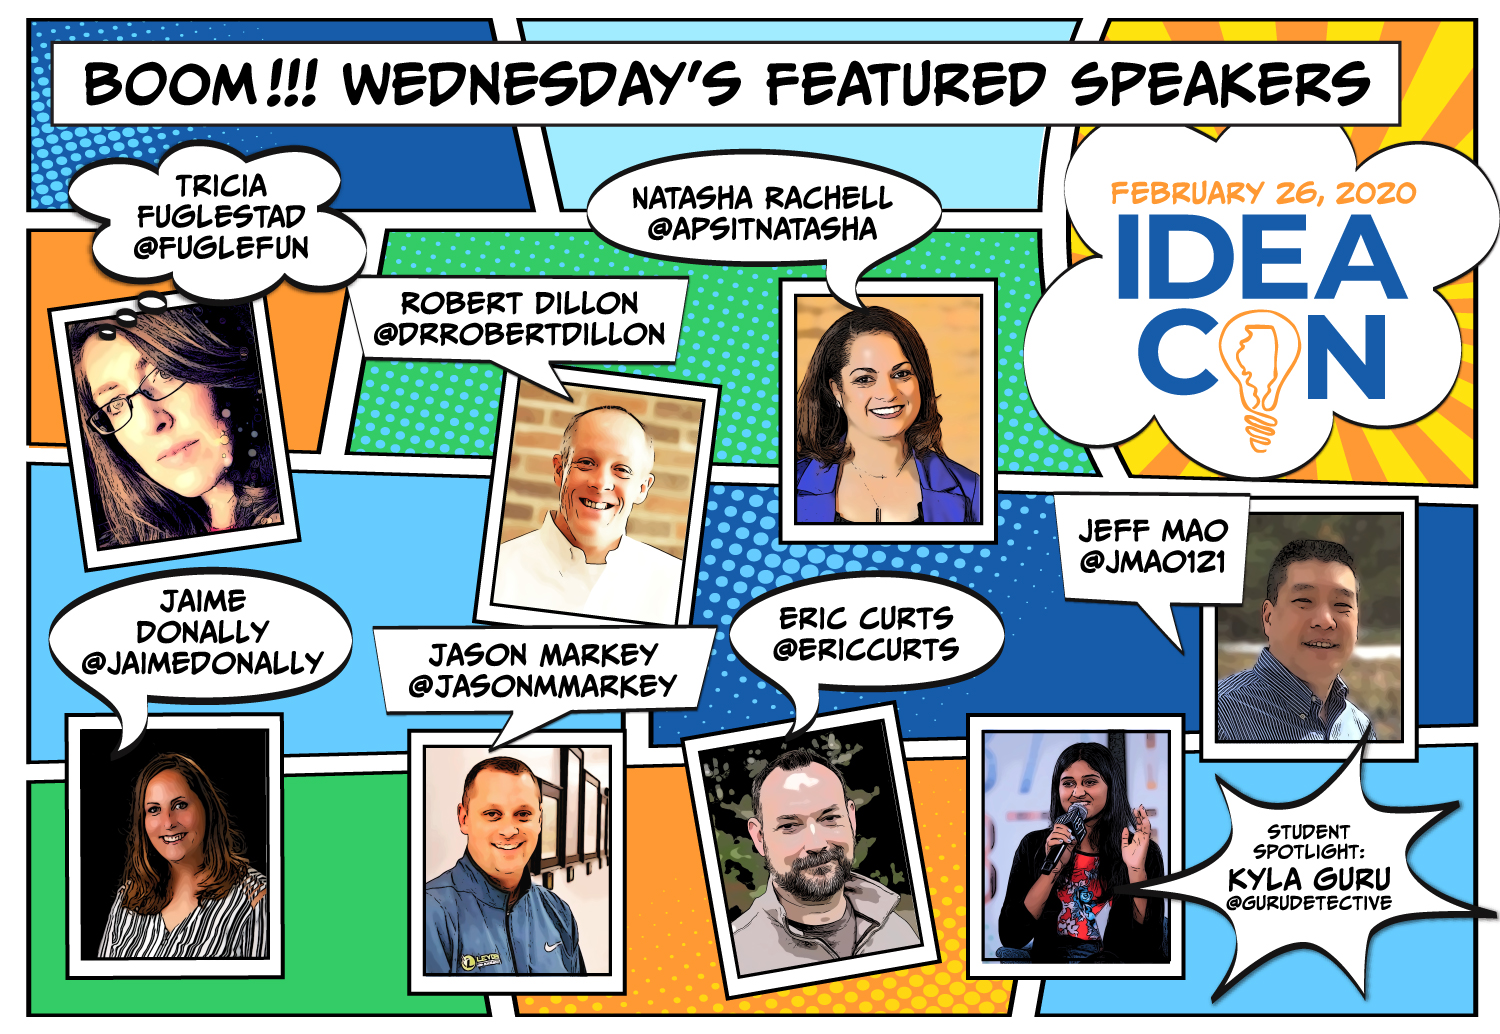 Wednesday Featured Speakers